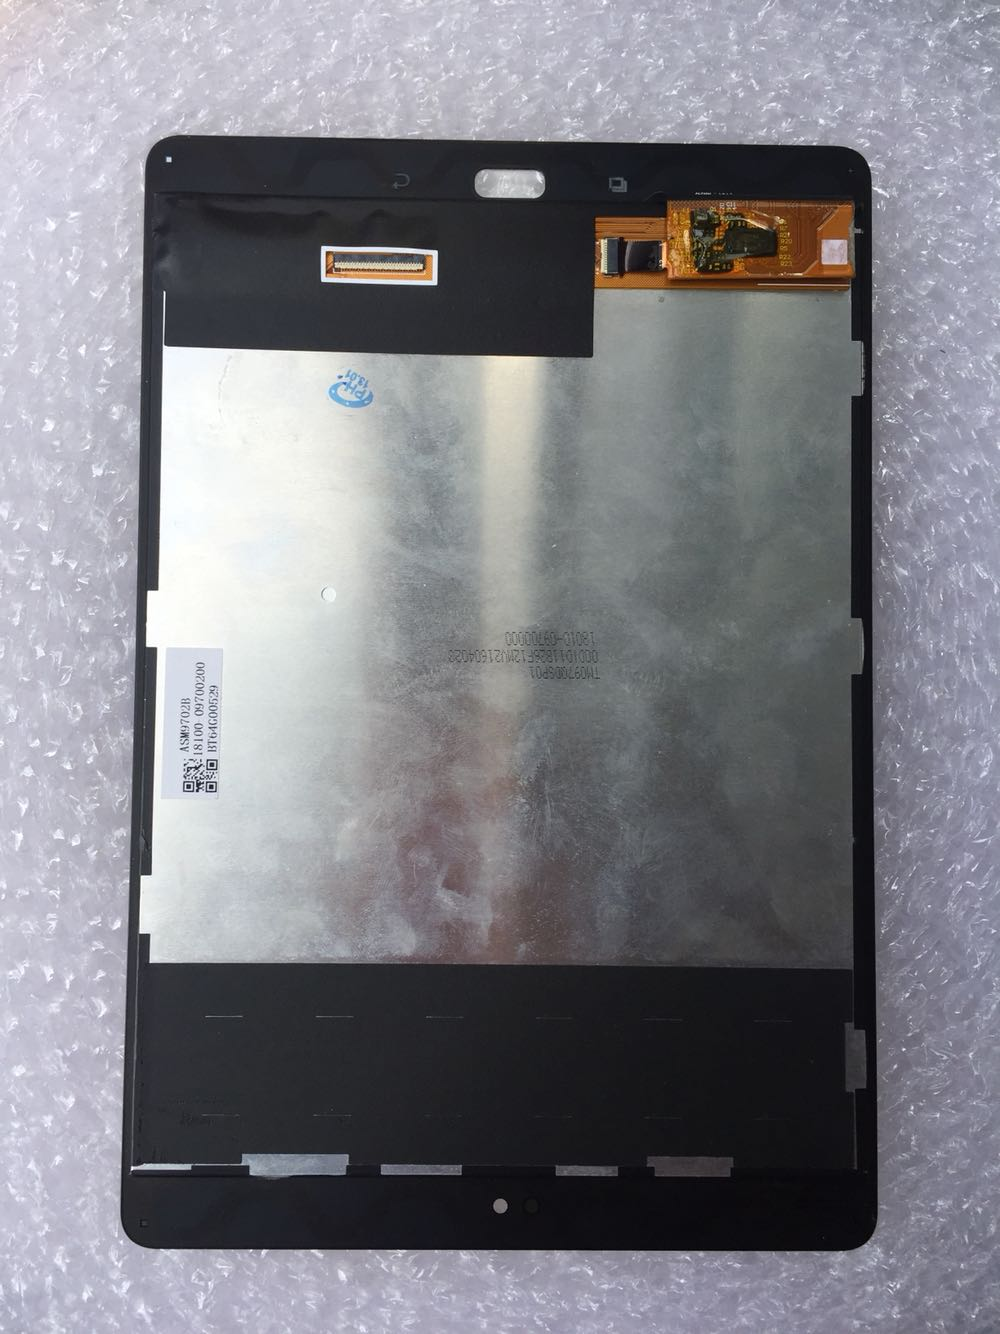 For ASUS ZenPad 3S 10 Z500M P027 Z500KL P001 LCD Display Matrix Touch Screen Digitizer Sensor Tablet PC Parts Assembly original for asus zenpad 3s 10 z500m p027 z500kl p001 lcd display matrix touch screen digitizer sensor tablet pc parts assembly